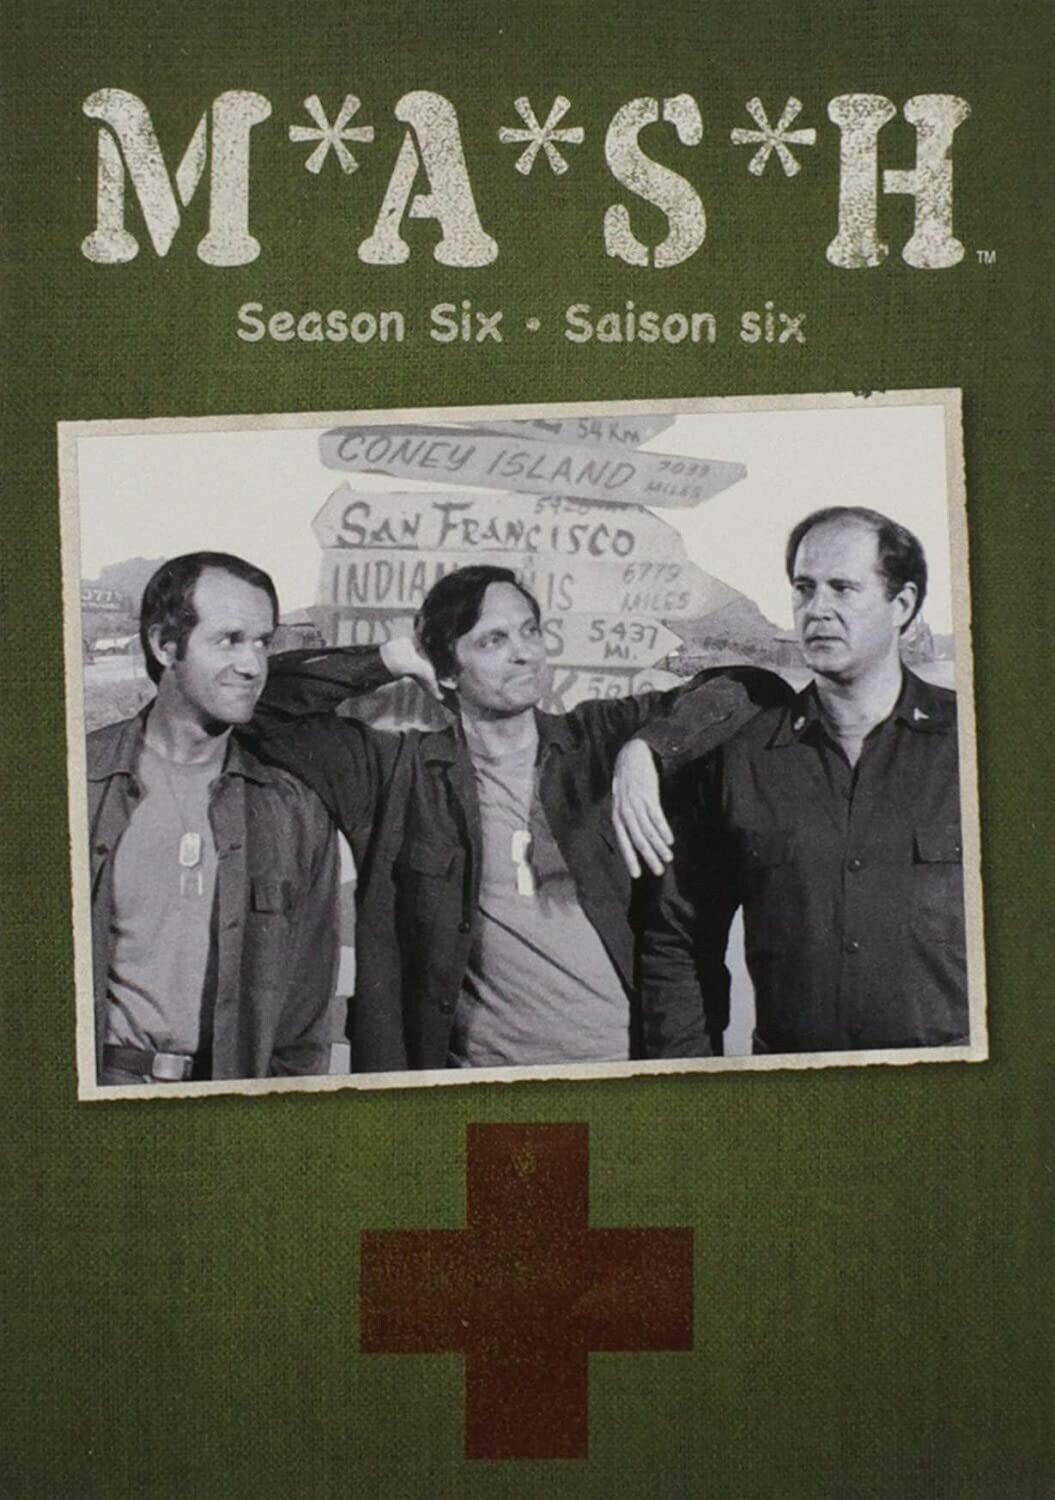 M*A*S*H Season Six  (7 day rental)